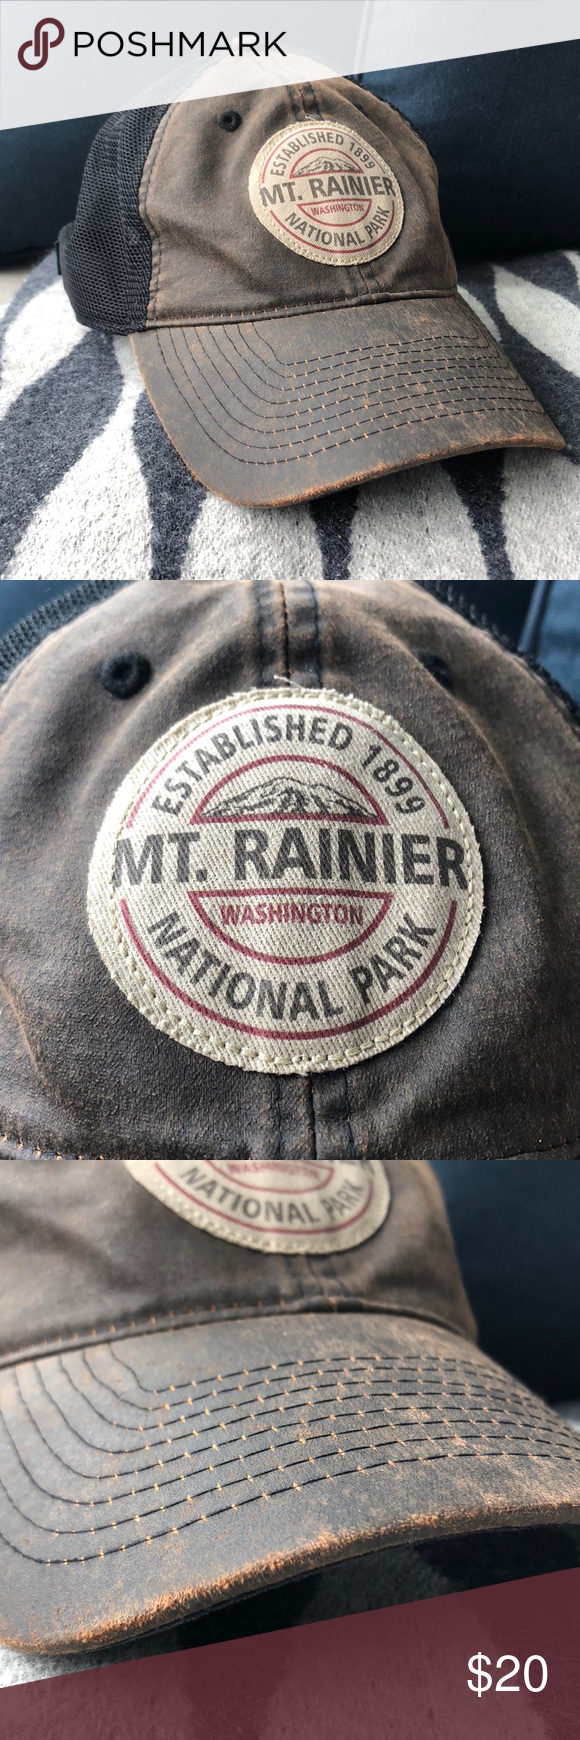 c4328390734808 Mt Rainier National Park hat Mt Rainier National Park hat Distressed Worn a  couple times In perfect condition legacy Accessories Hats